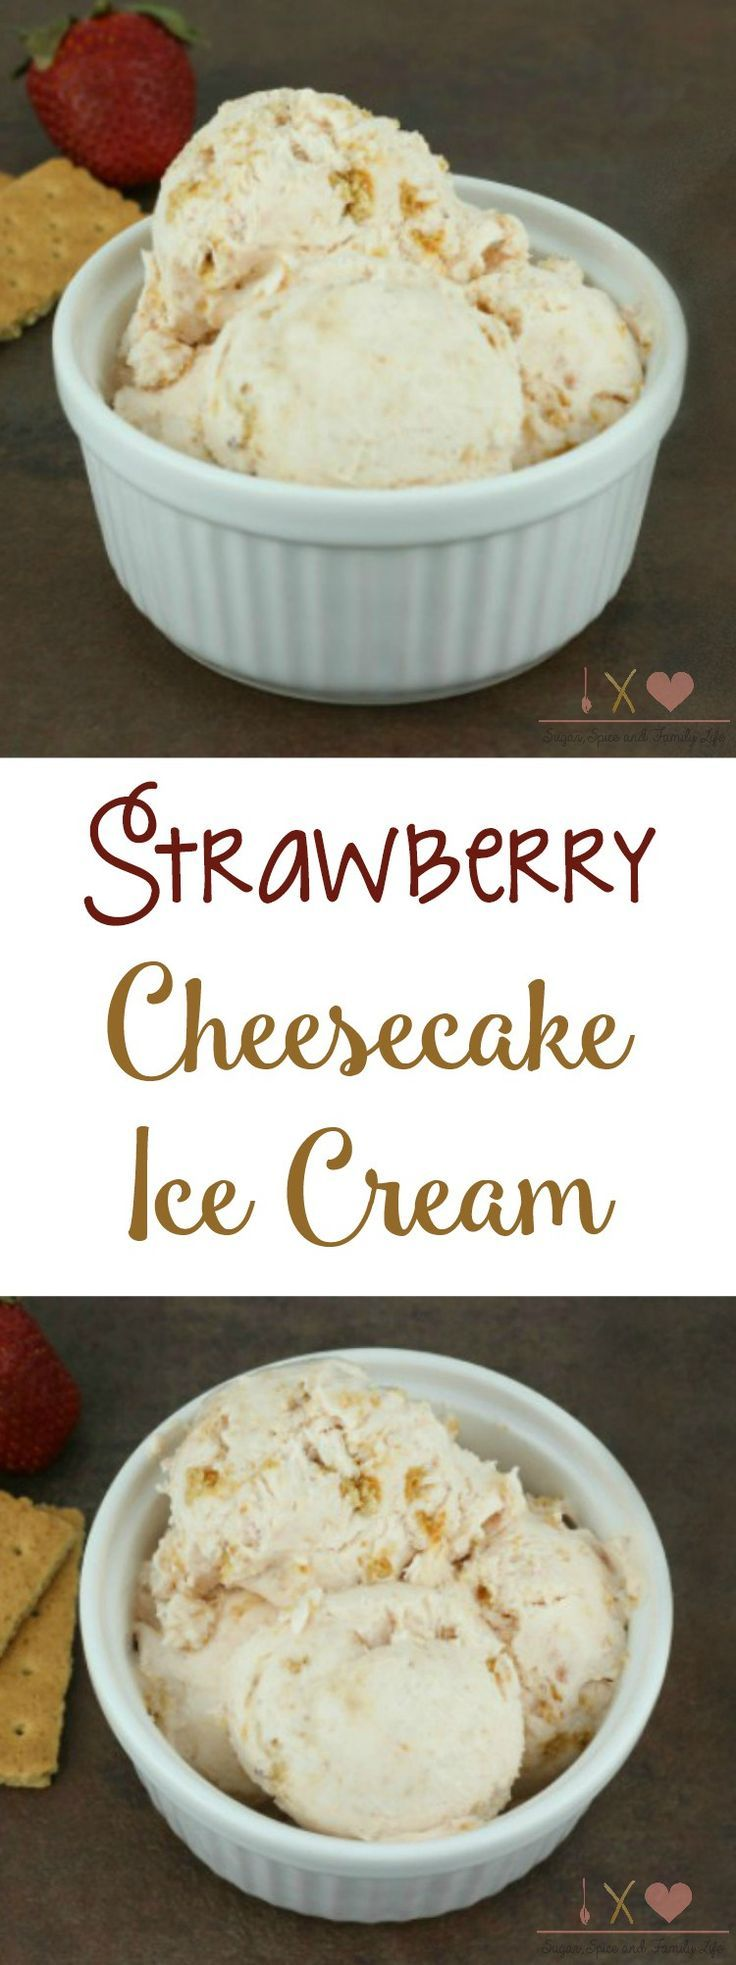 No Churn Strawberry Cheesecake Ice Cream is a delicious and easy dessert. It only contains 4 ingredients (whipping cream, condensed sweetened milk, strawberry cream cheese and graham crackers) and doesn't require an ice cream machine. - Strawberry Cheesecake Ice Cream Recipe – No Machine Needed! on Sugar, Spice and Family Life #icecream #strawberrycheesecake #nochurnicecream #strawberry #cheesecake #grahamcrackers #creamcheese #dessert #recipe